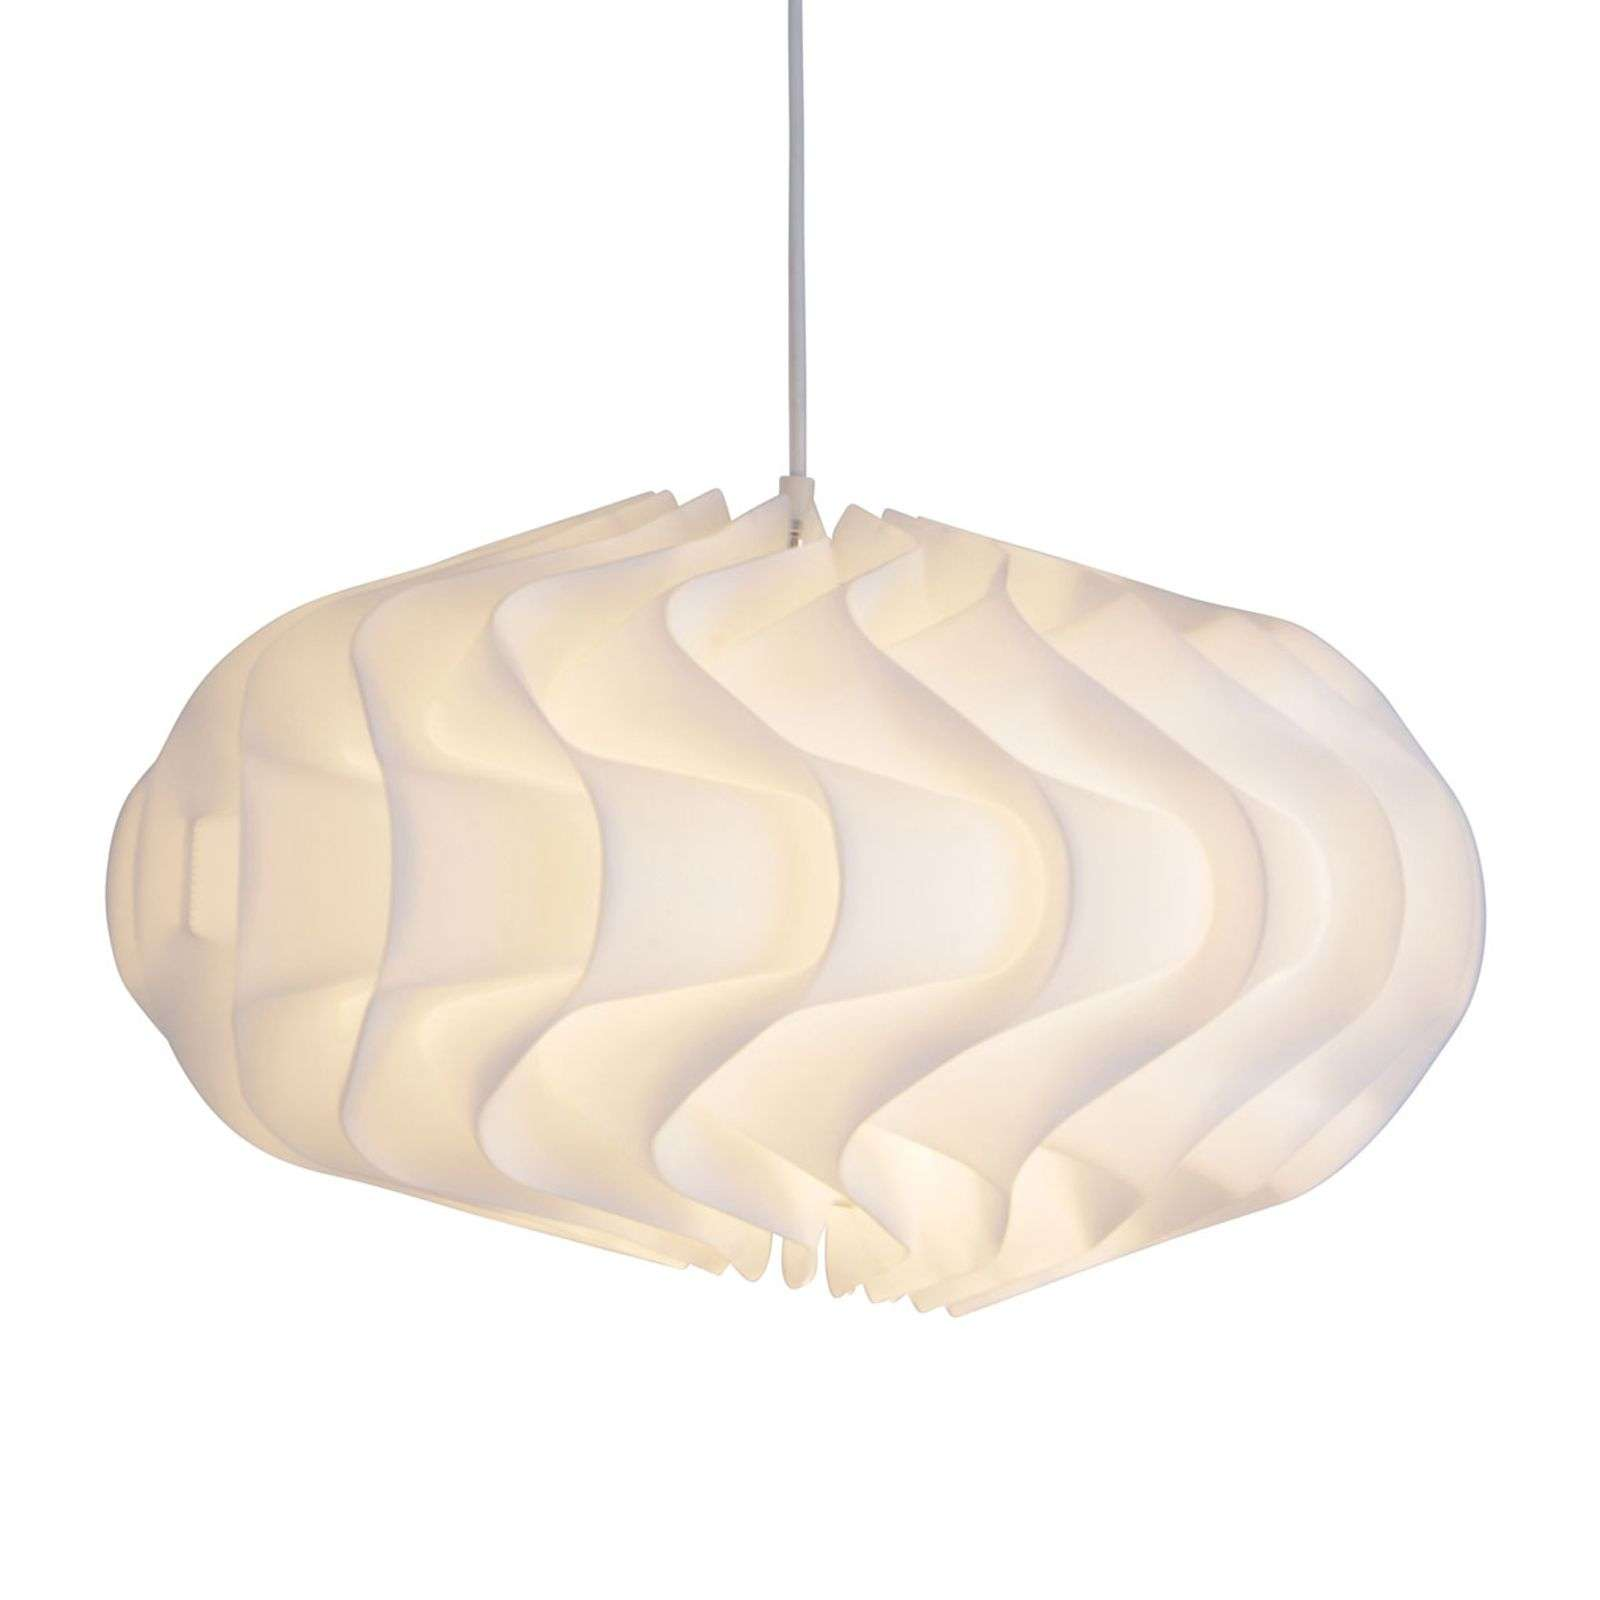 Suspension White en forme de vagues